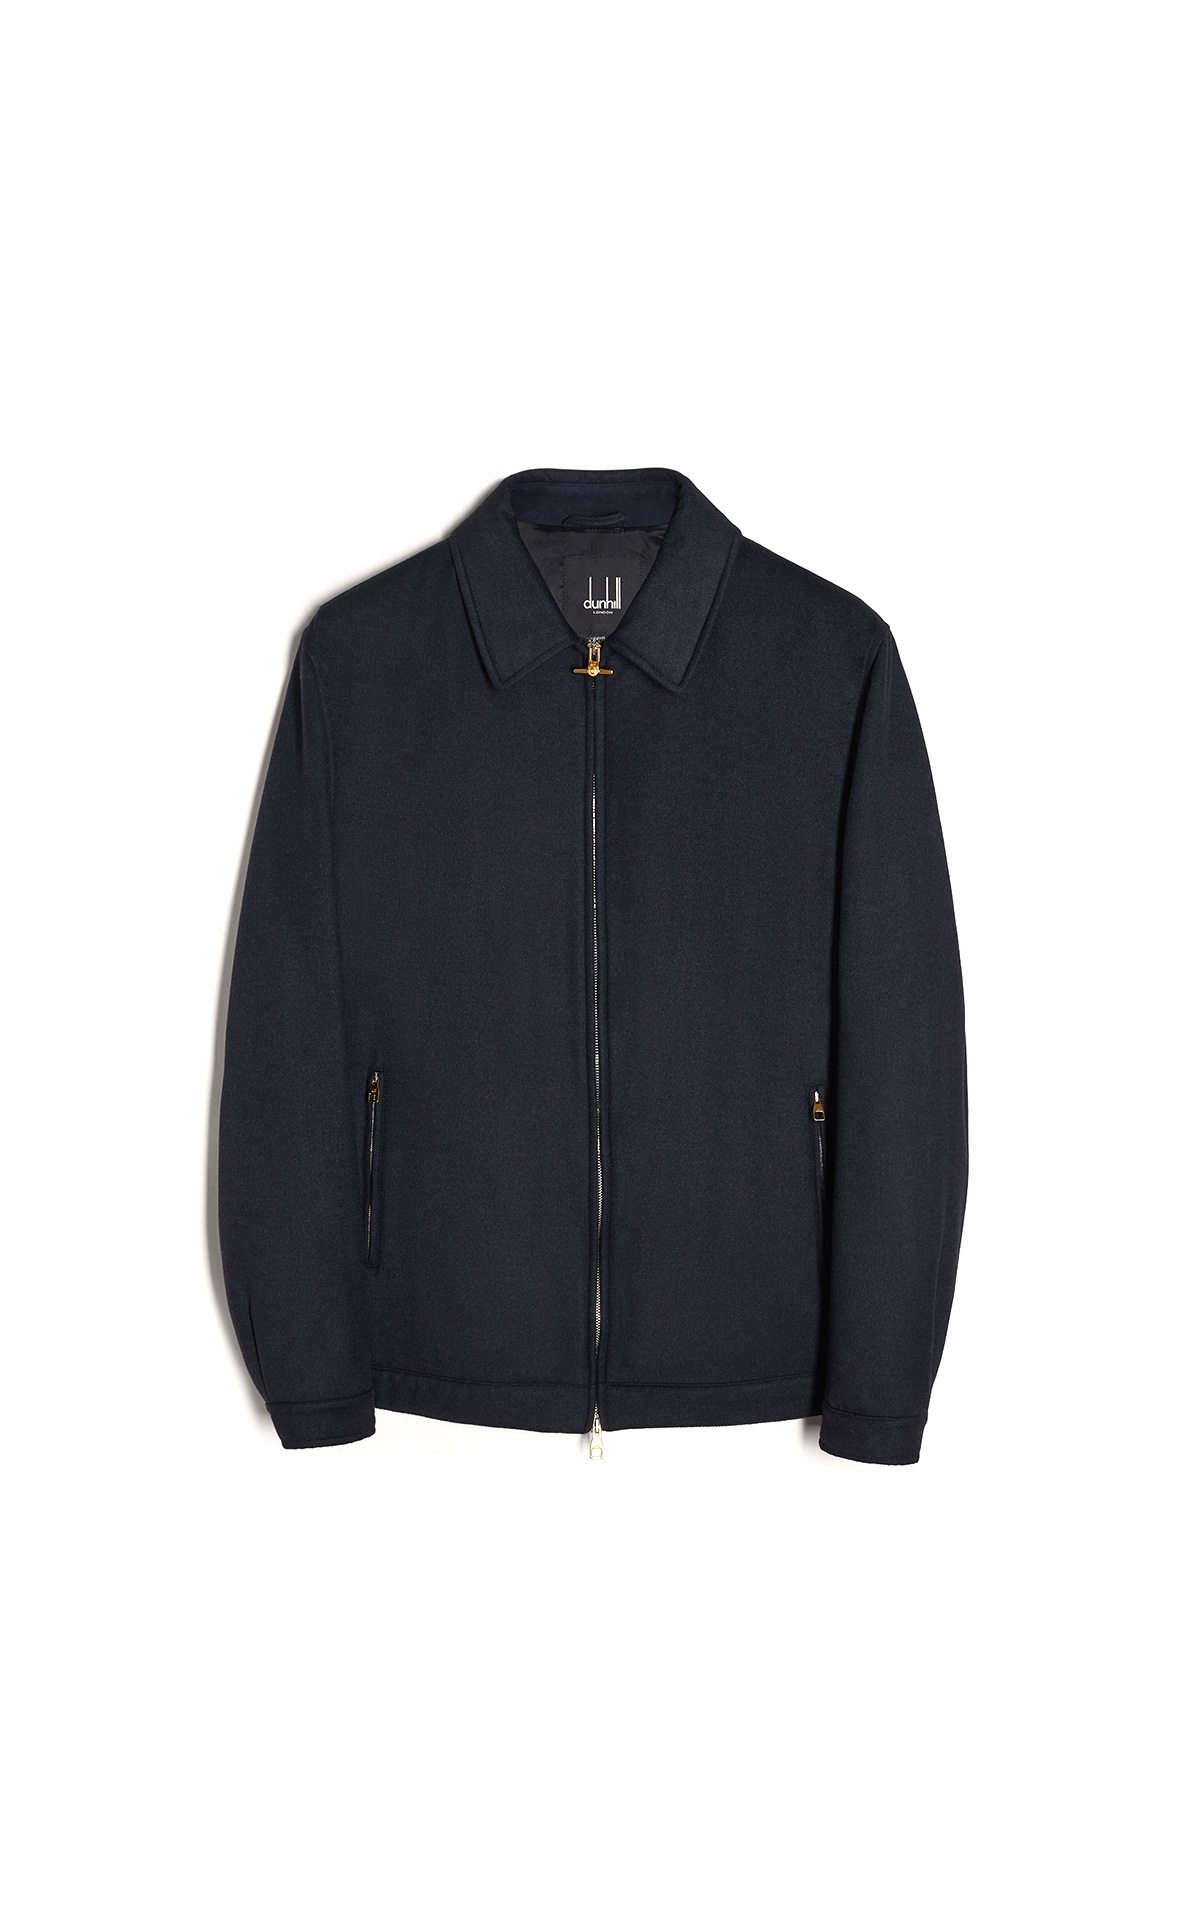 dunhill Black jacket | La Vallée Village